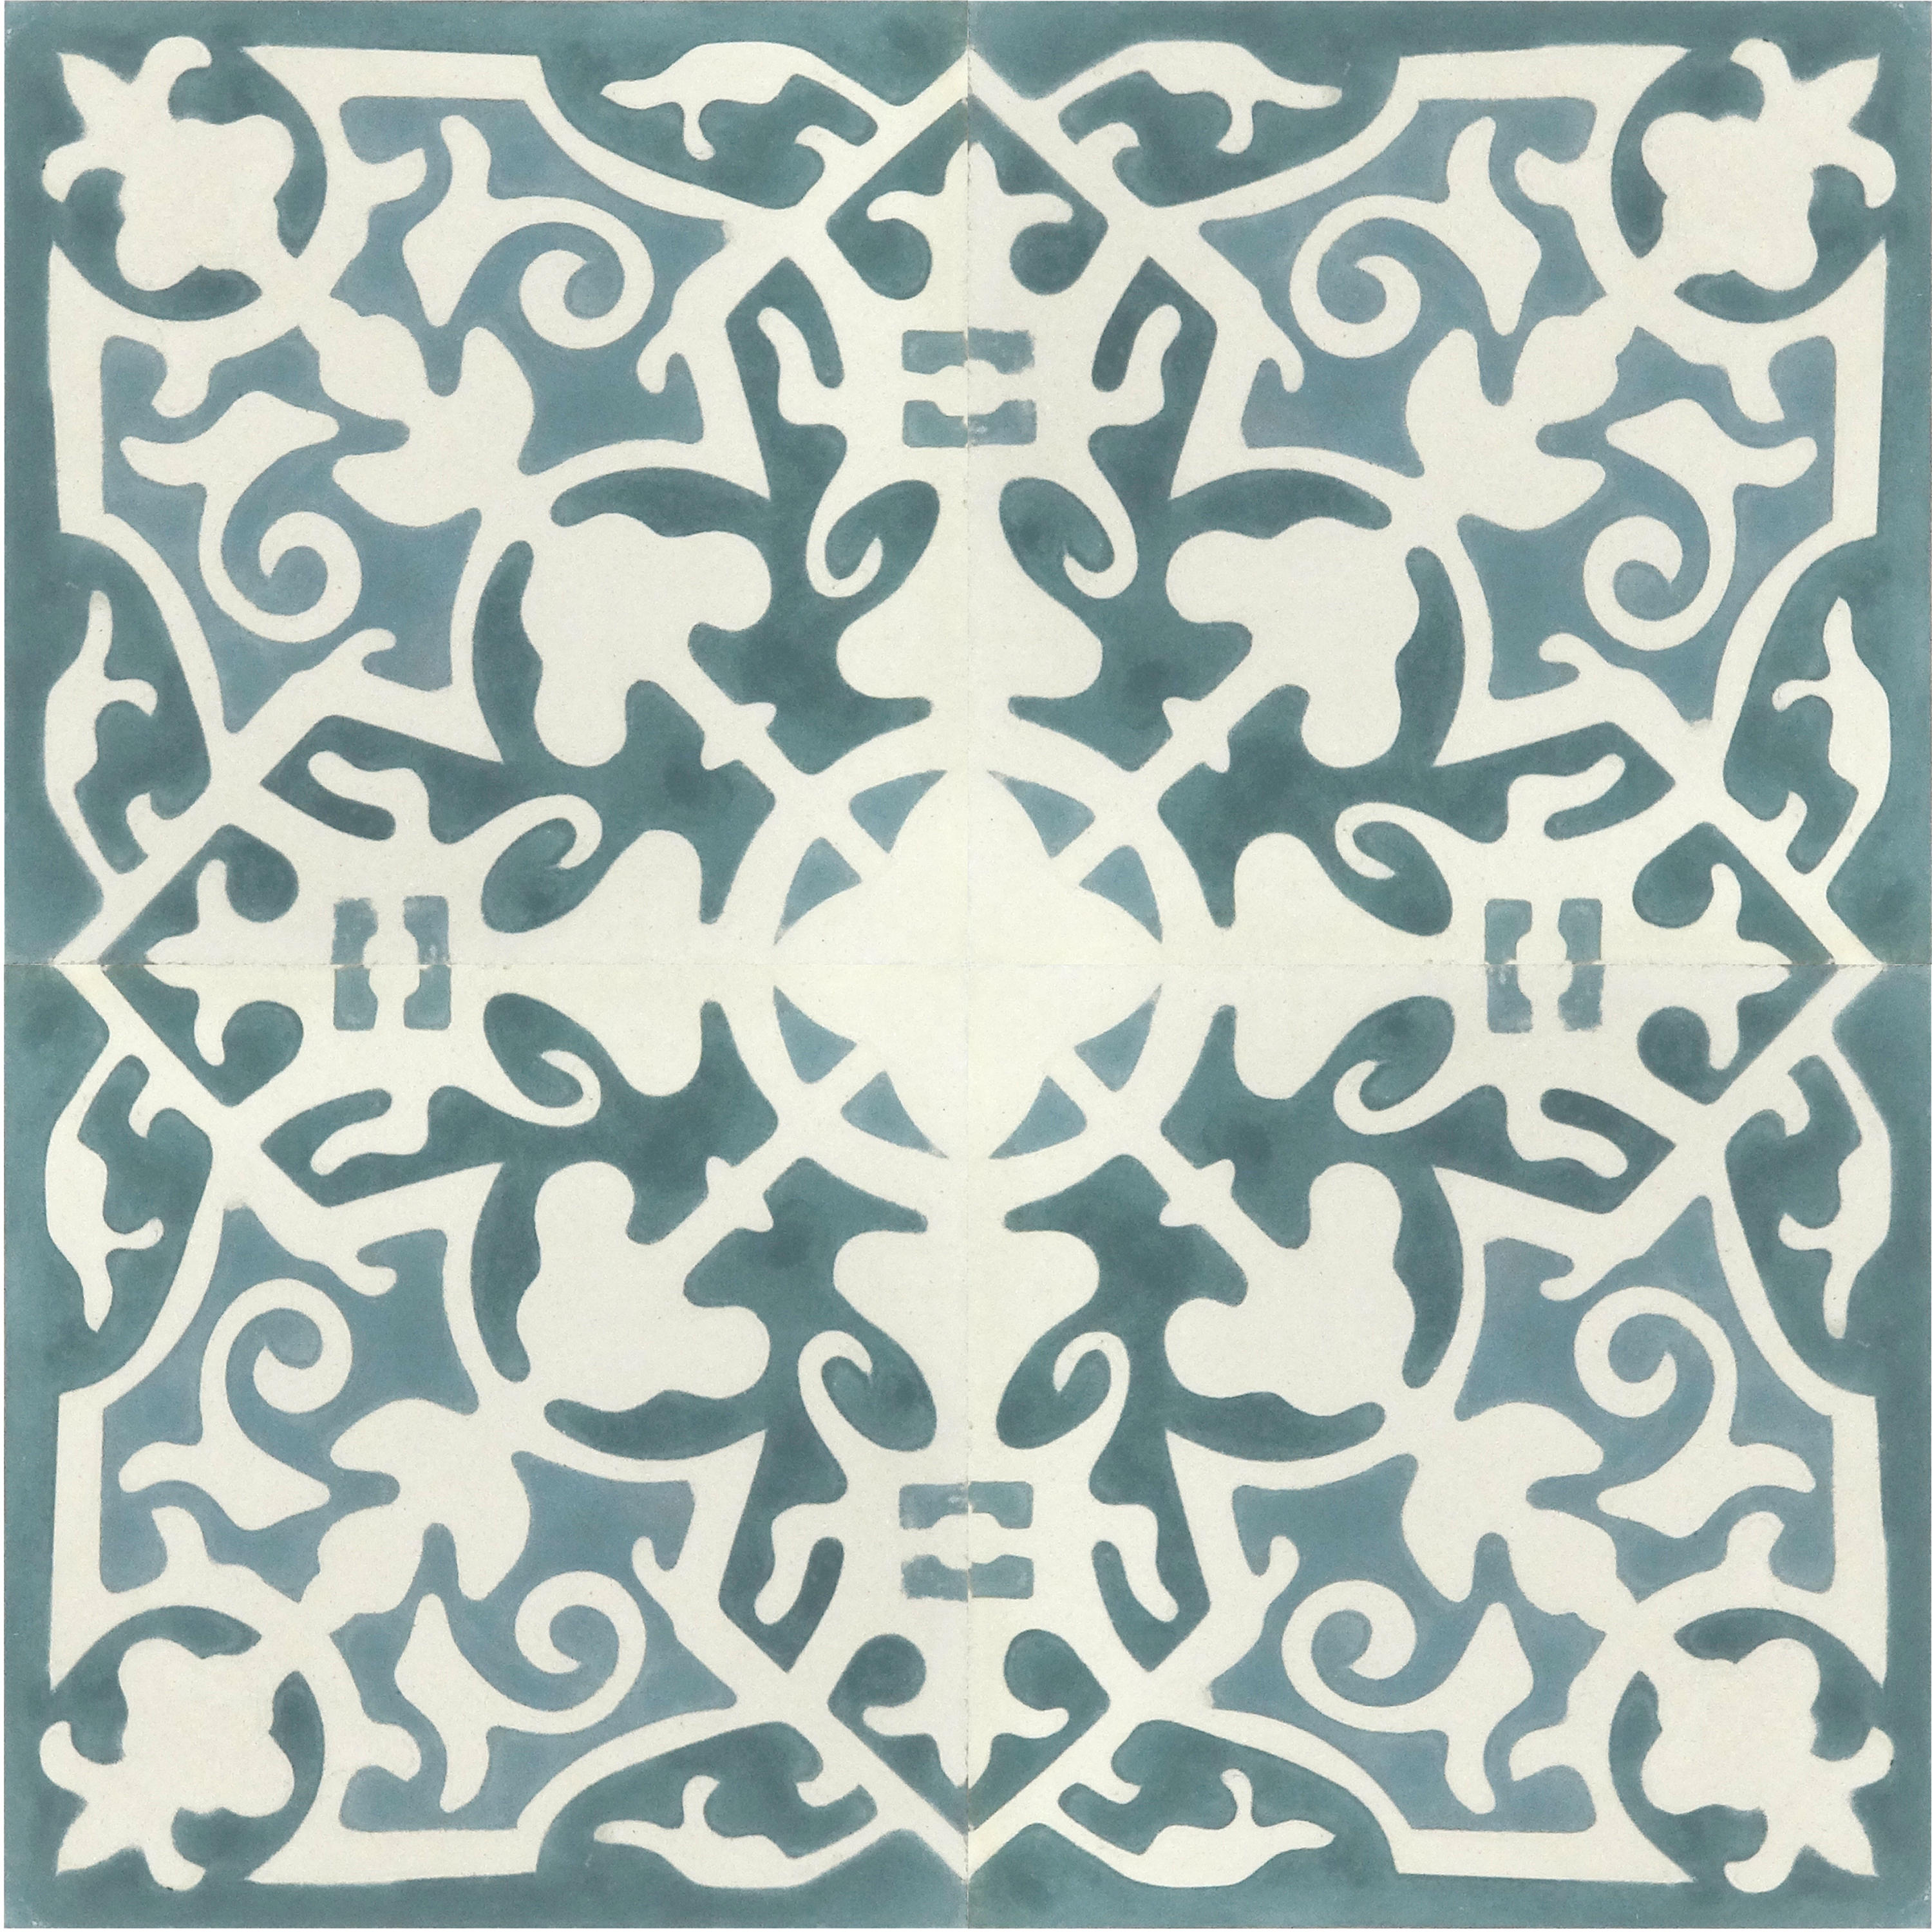 ANTIQUE AND OTHER | MADRID - Concrete tiles from Tango Tile | Architonic